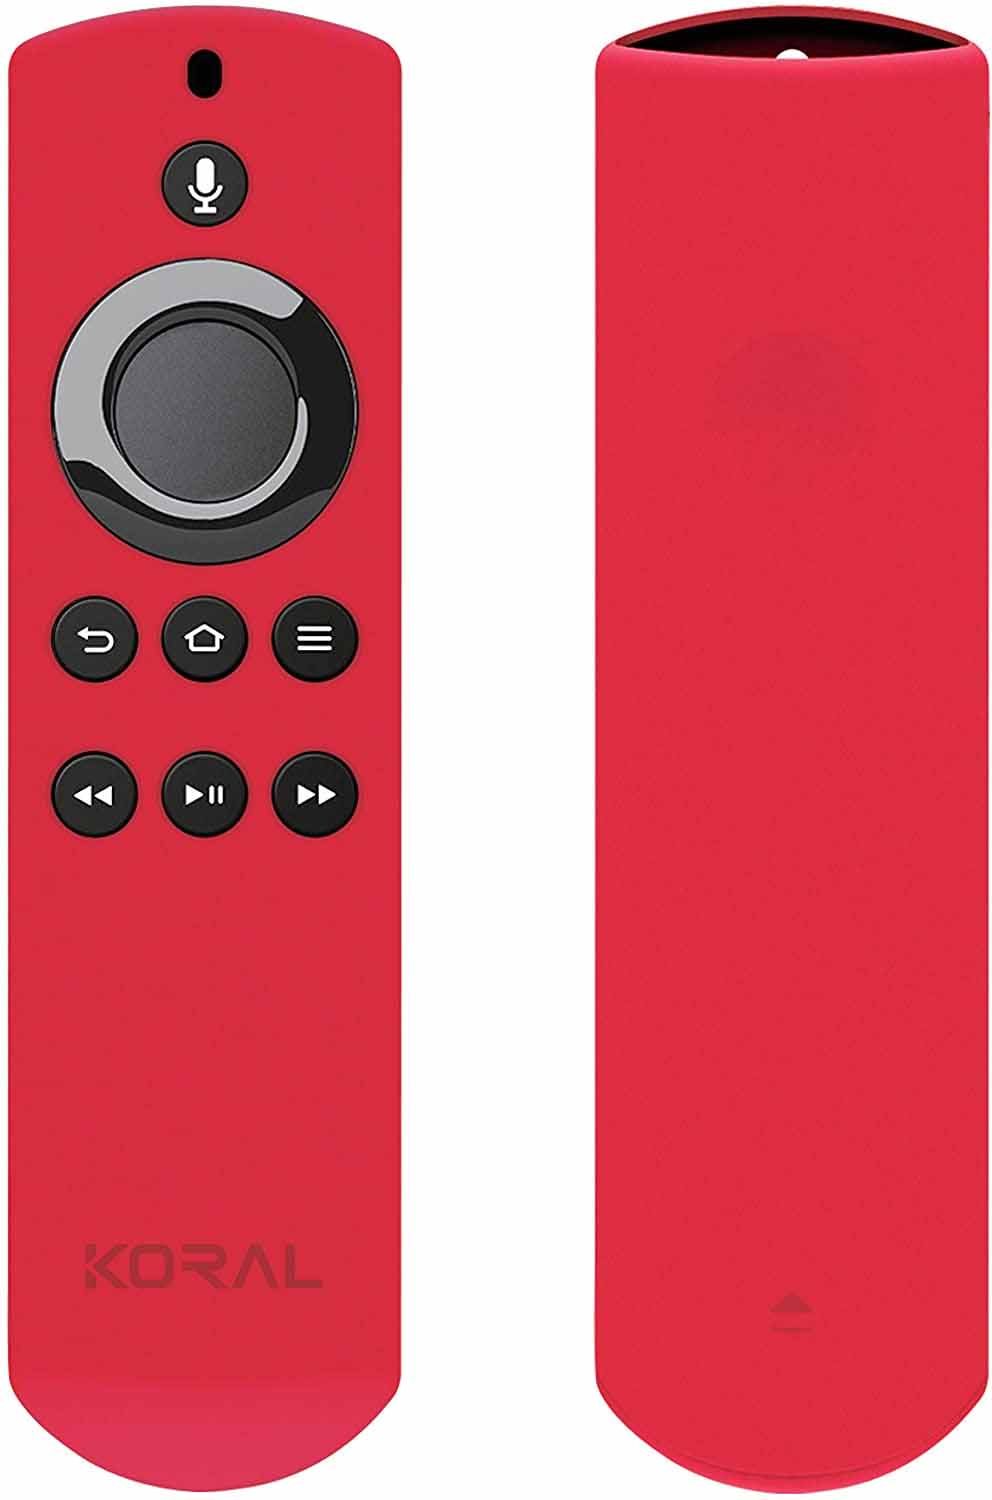 Koral Case for Alexa Voice Remote for Fire TV Stick